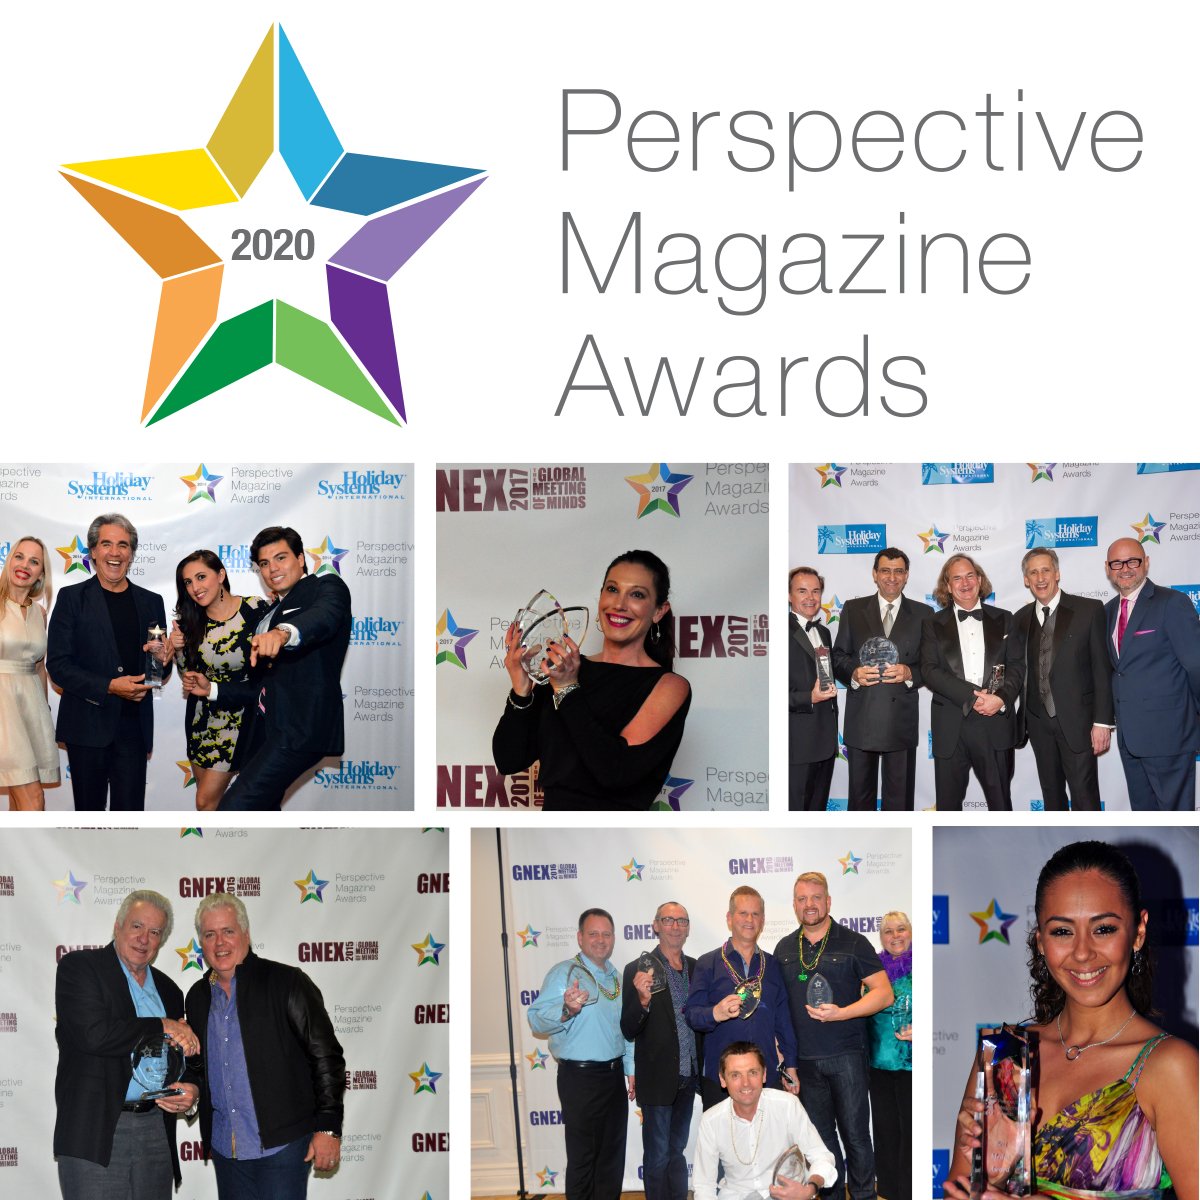 2020 Perspective Magazine Awards